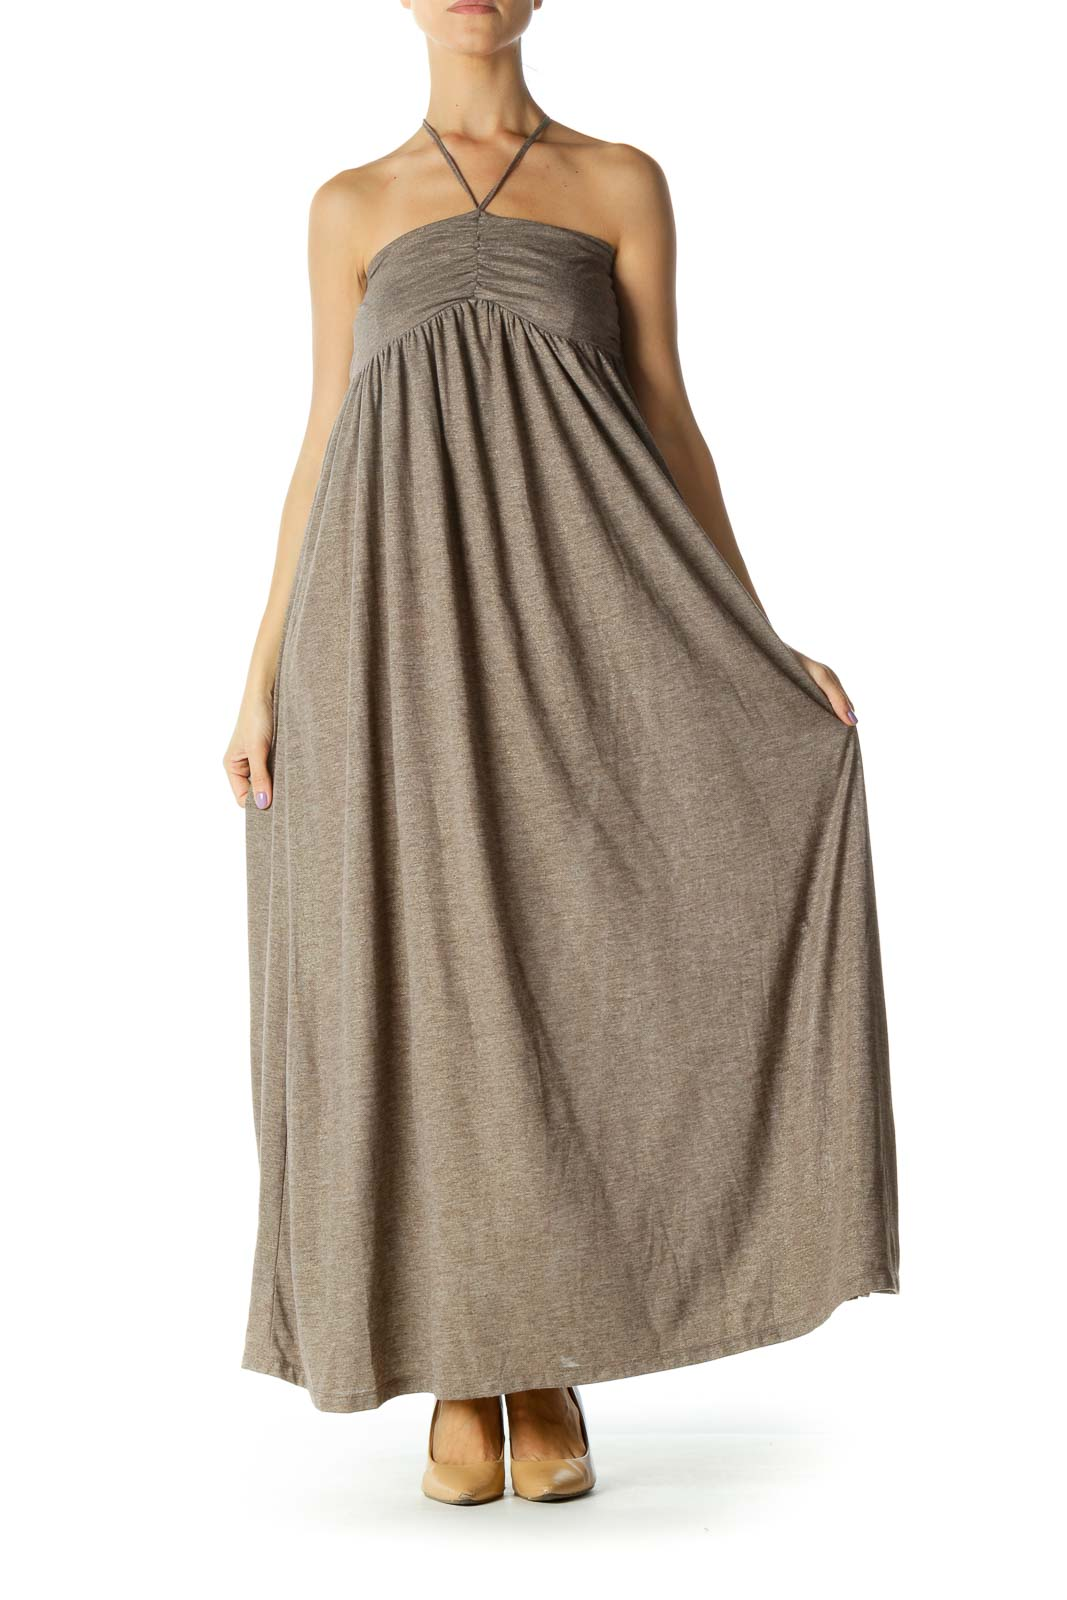 Beige Gold Sparkle Strapless Jersey-Knit Day Dress Front